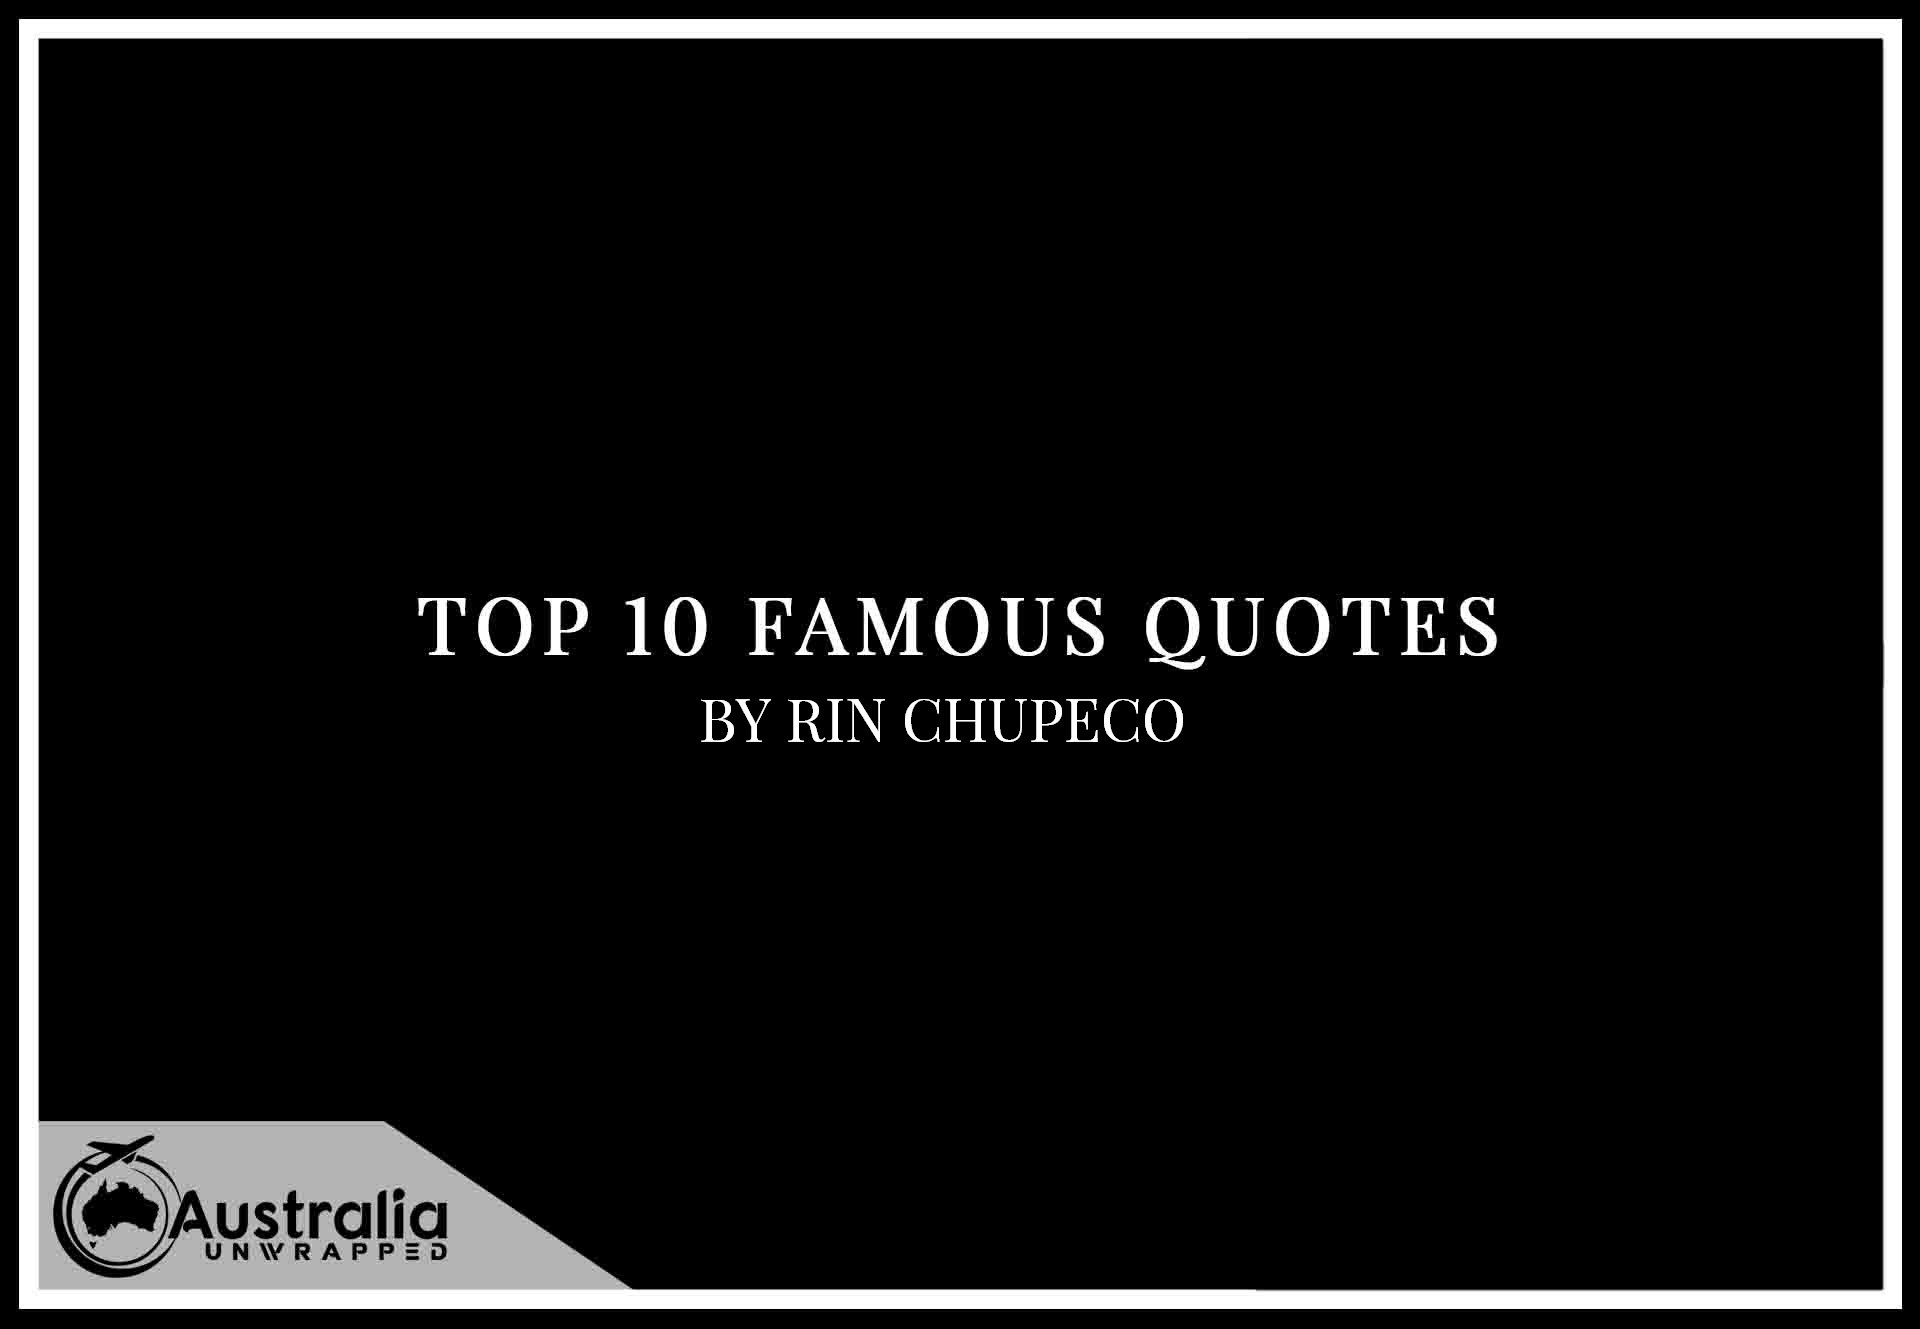 Top 10 Famous Quotes by Author Rin Chupeco